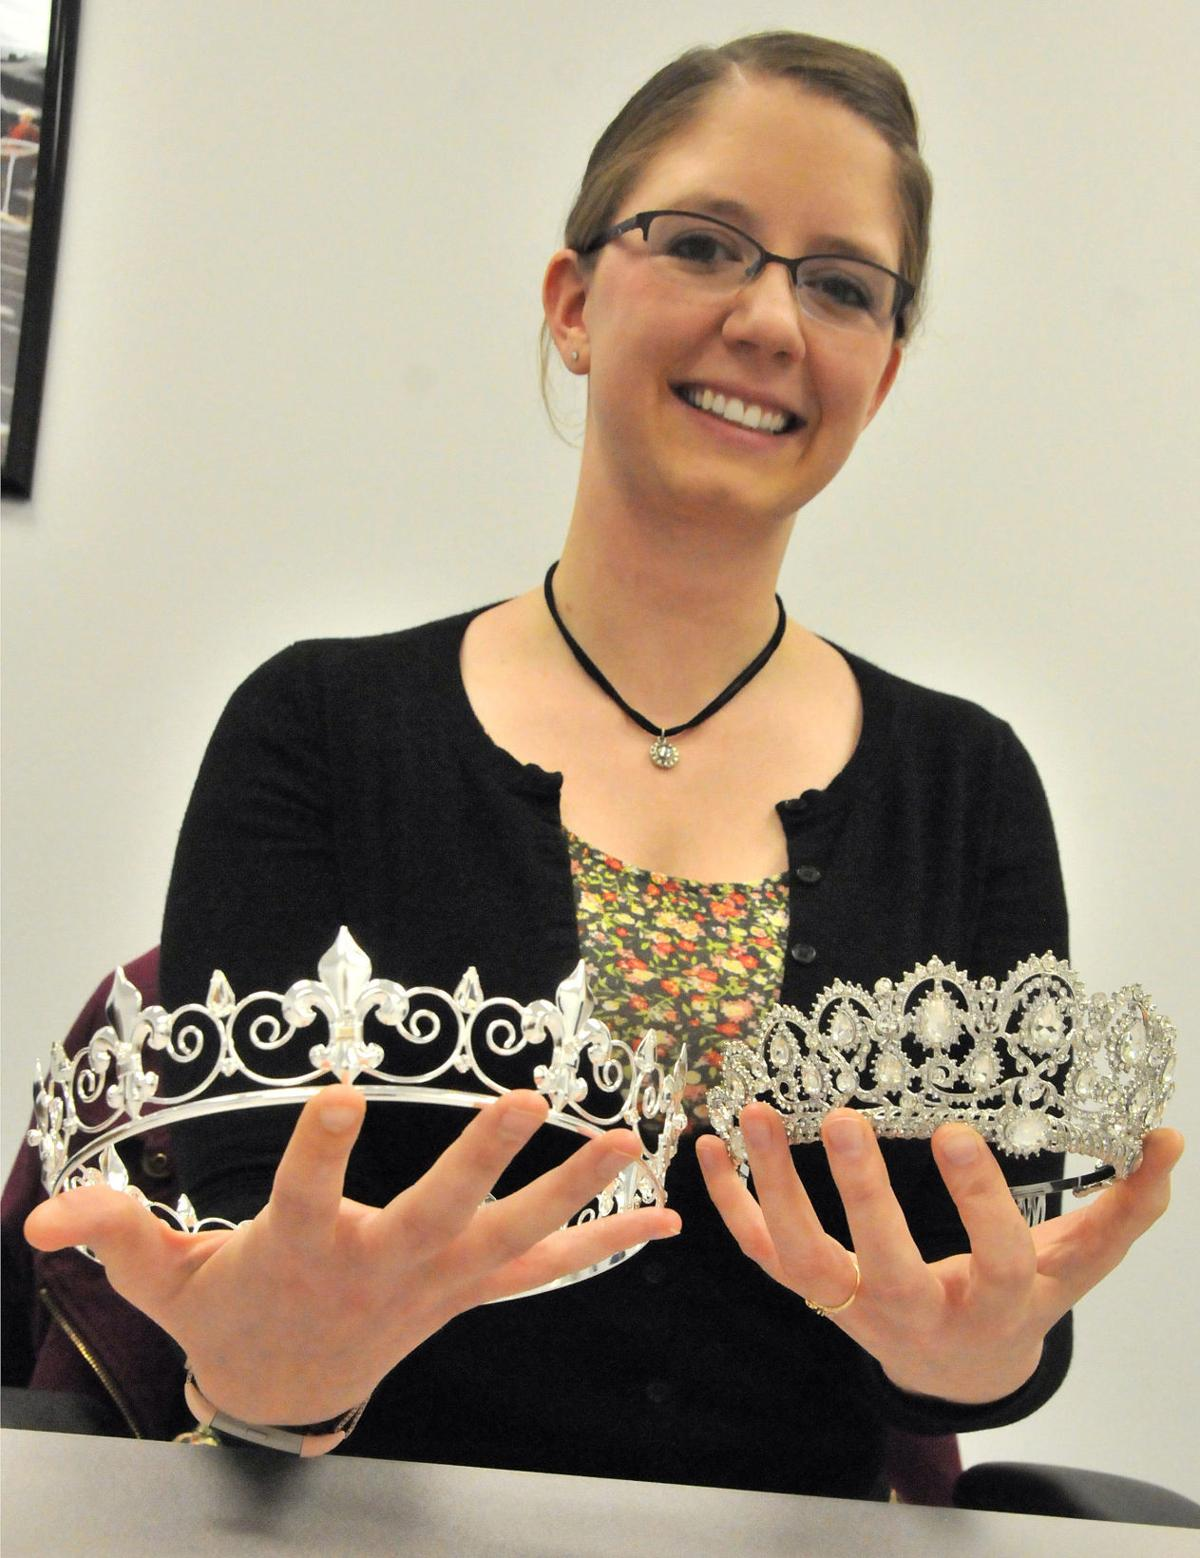 Prom crowns